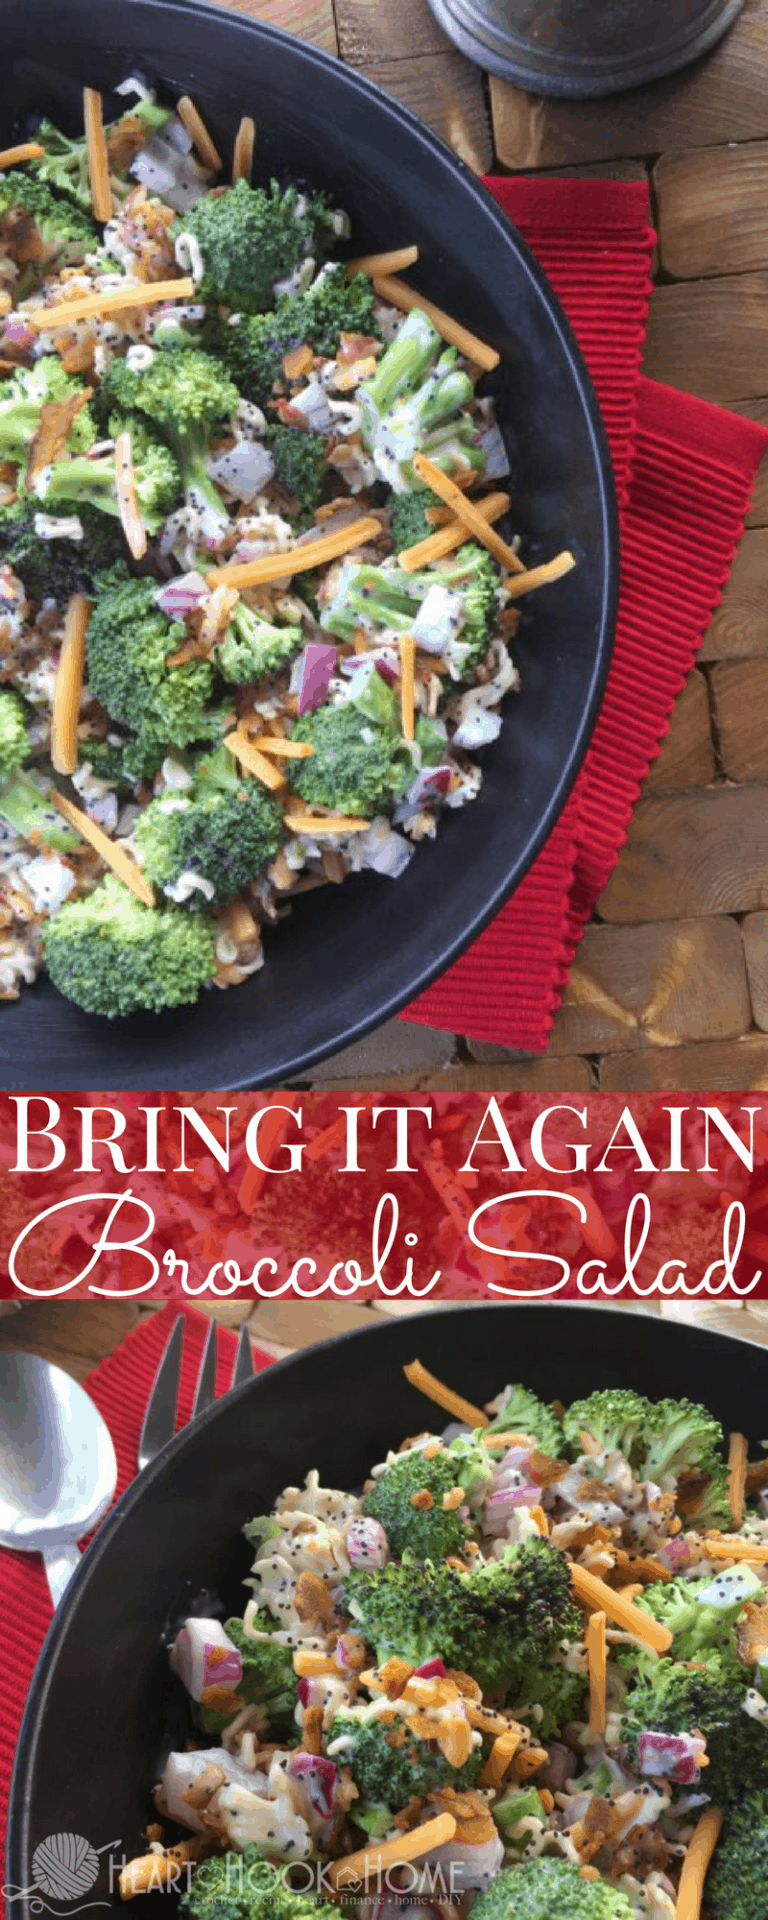 Bring it Again Broccoli Salad with Ramen Recipe